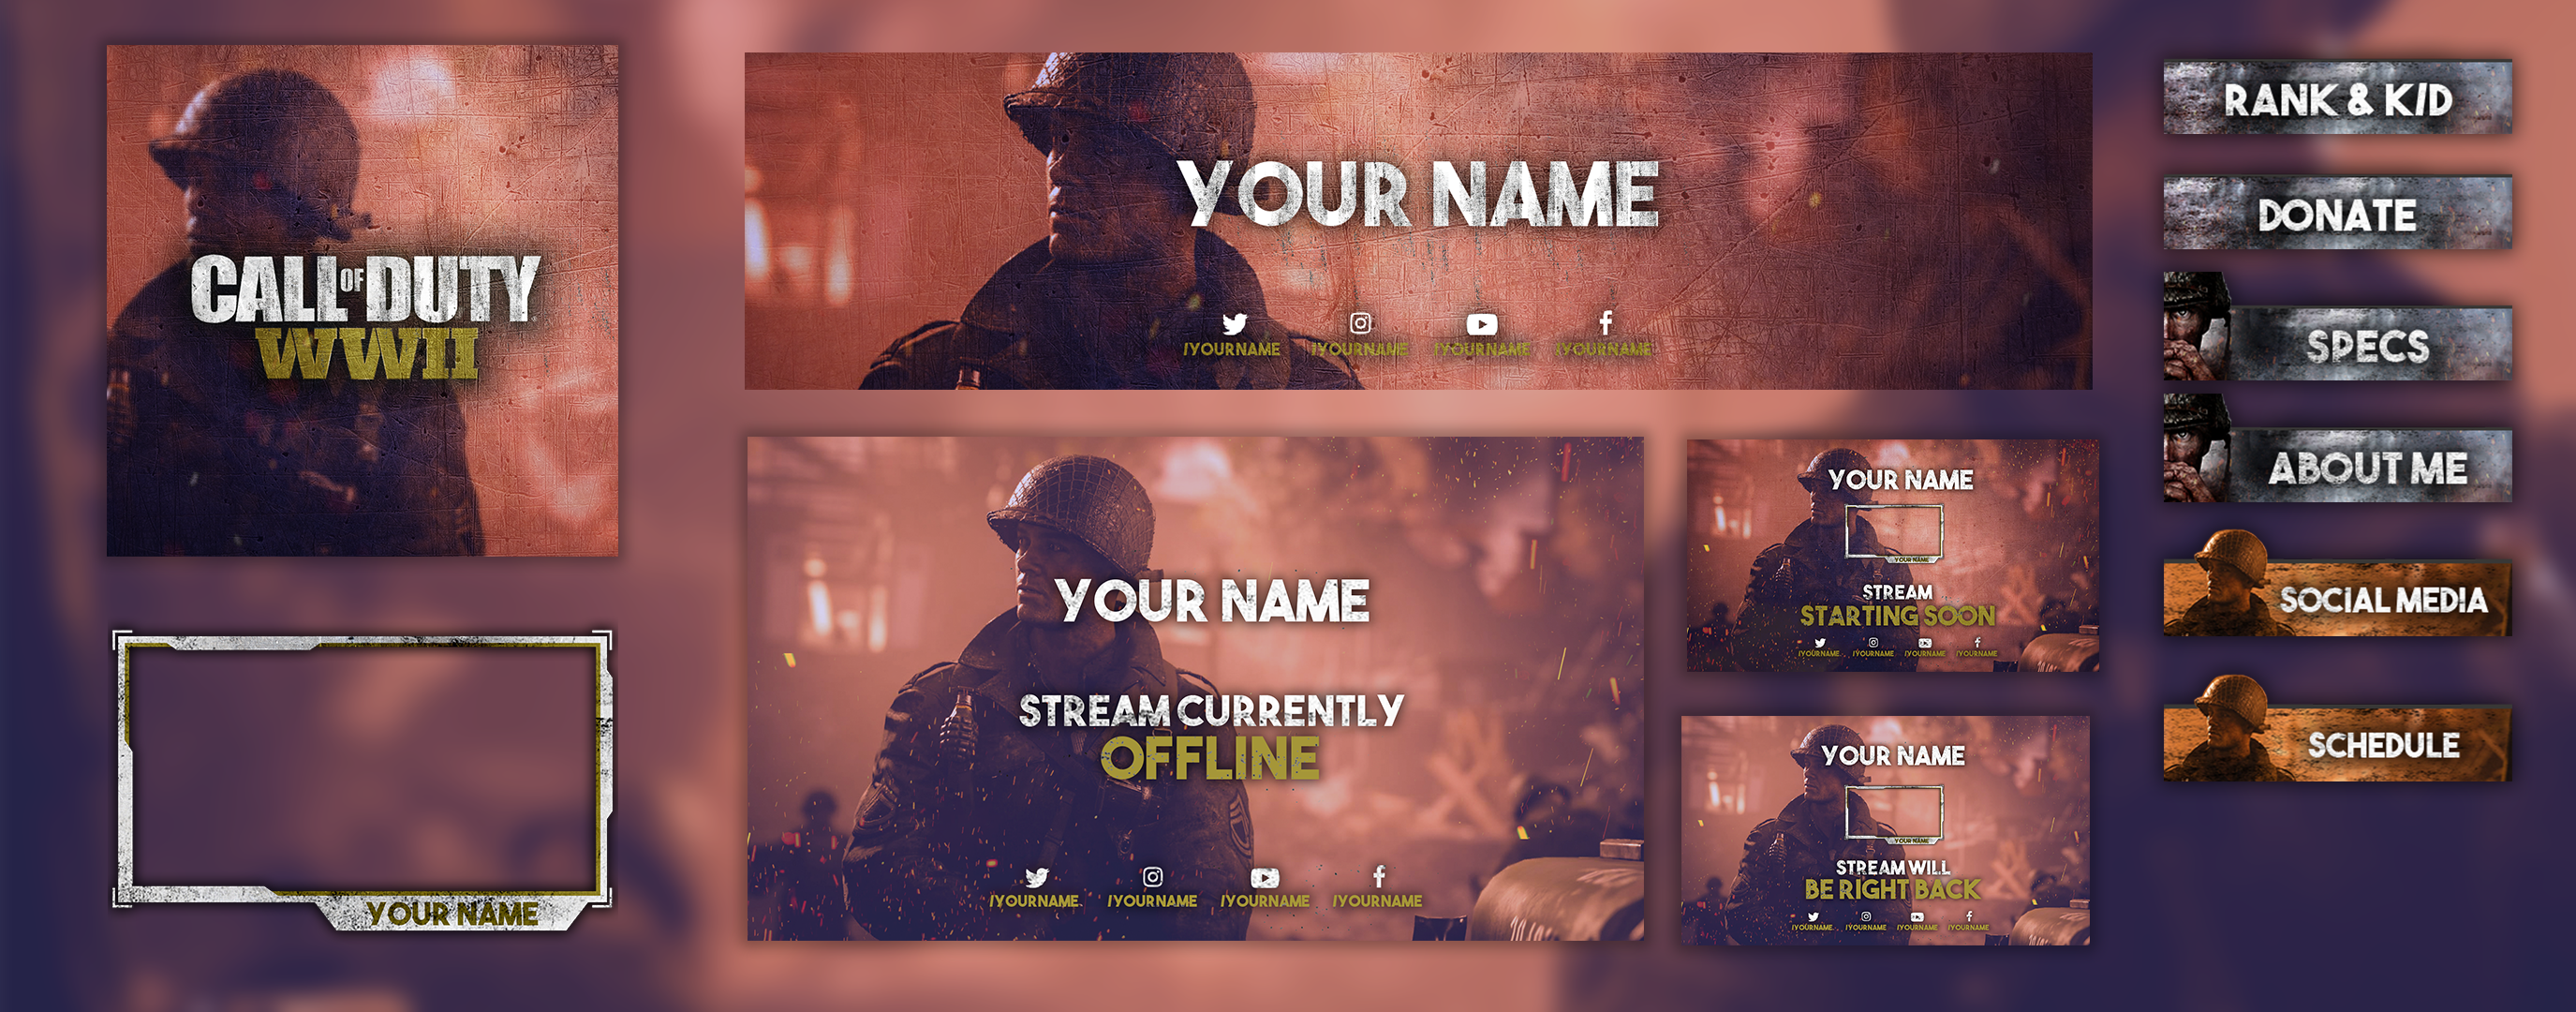 Http Ift Tt 2xqn9tu Twitch Graphics For Call Of Duty Wwii Streaming Including An Overlay Panels Banner Profile Photo An Call Of Duty Twitch Game Interface